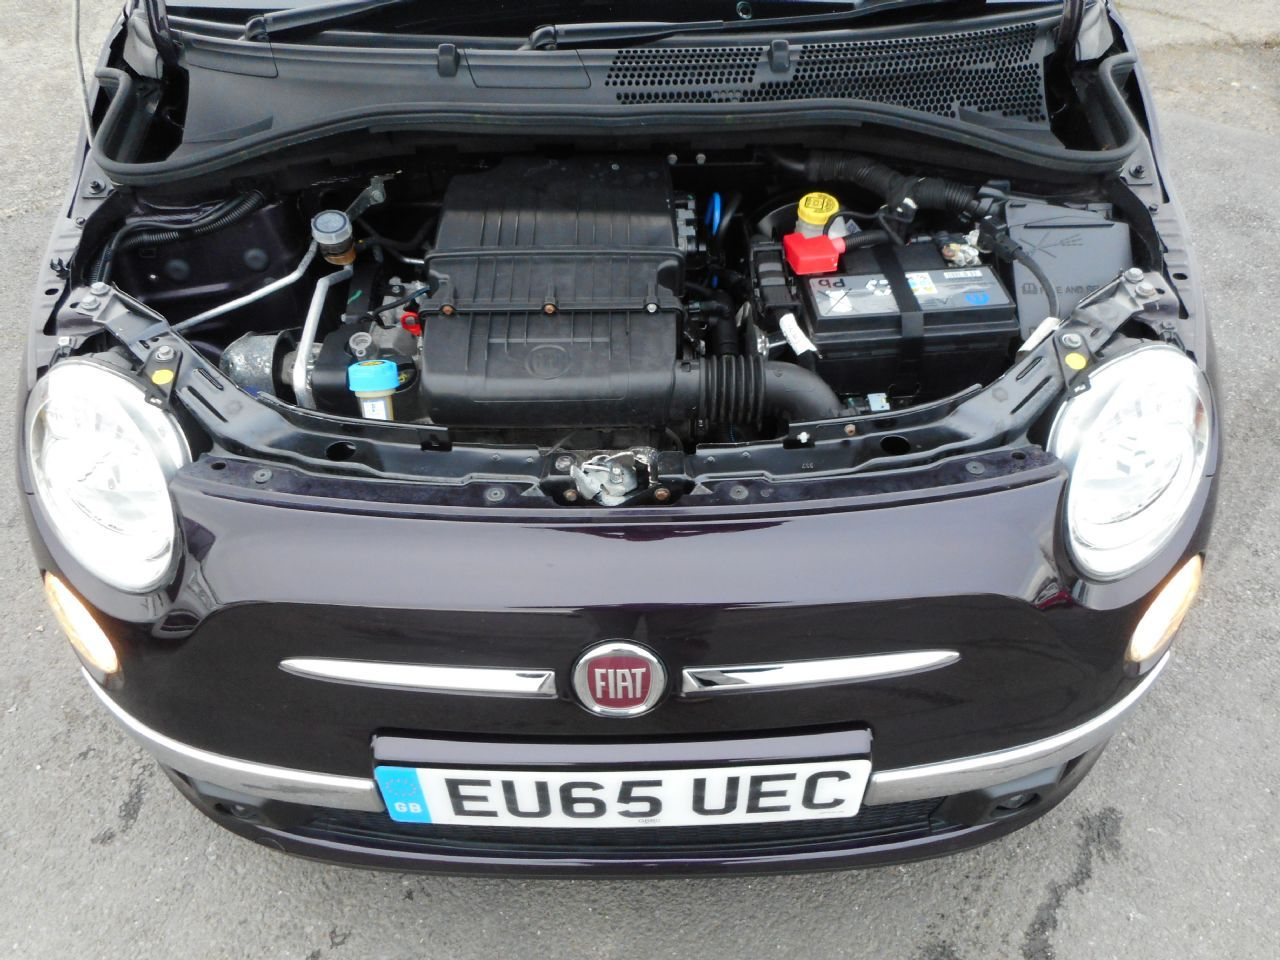 FIAT 500 1.2i Lounge S/S (2015) - Picture 10